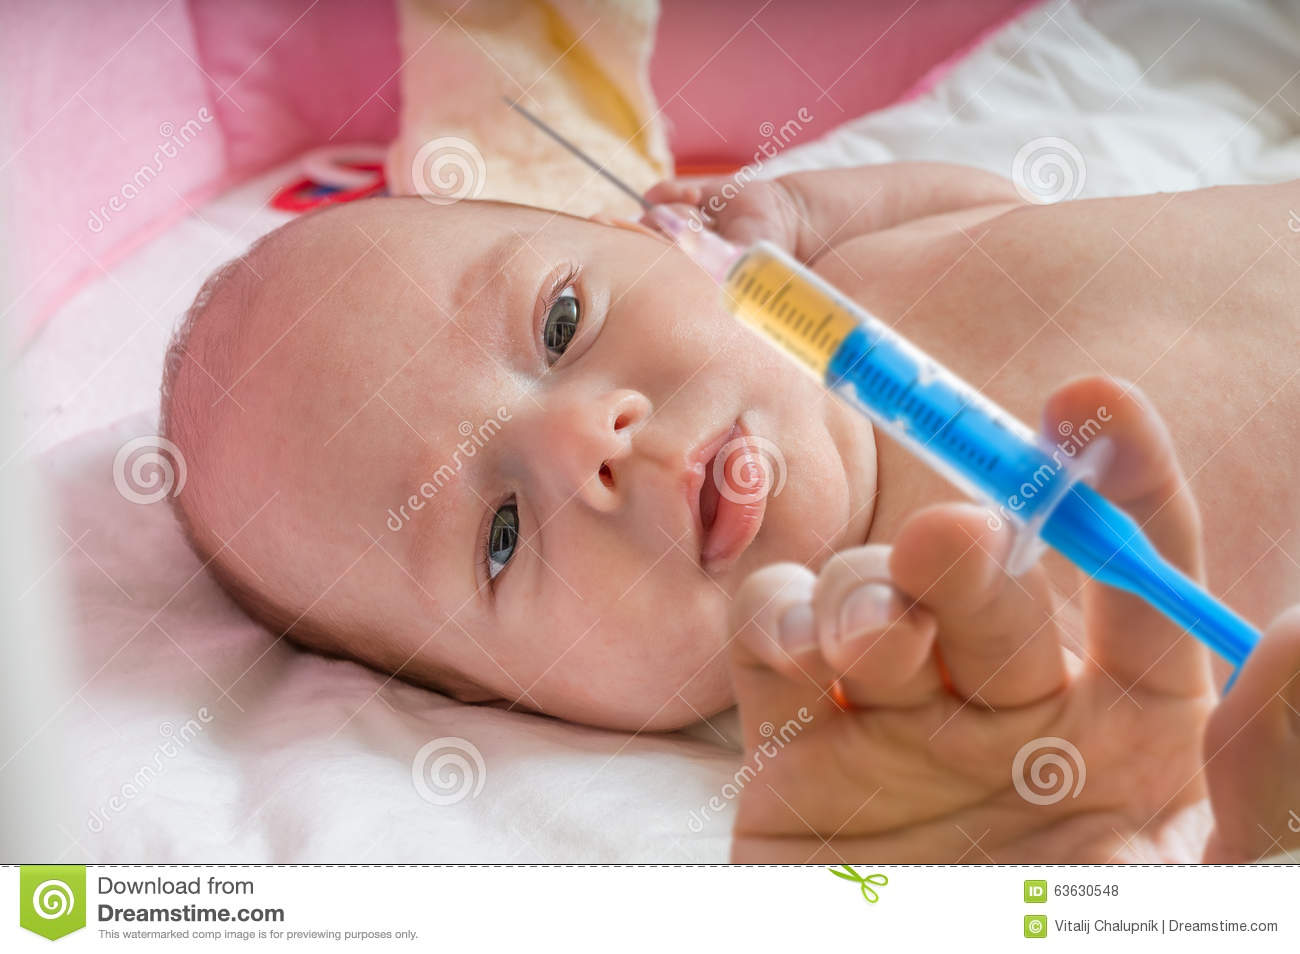 Ill baby is starring on syringe with immunization vaccine